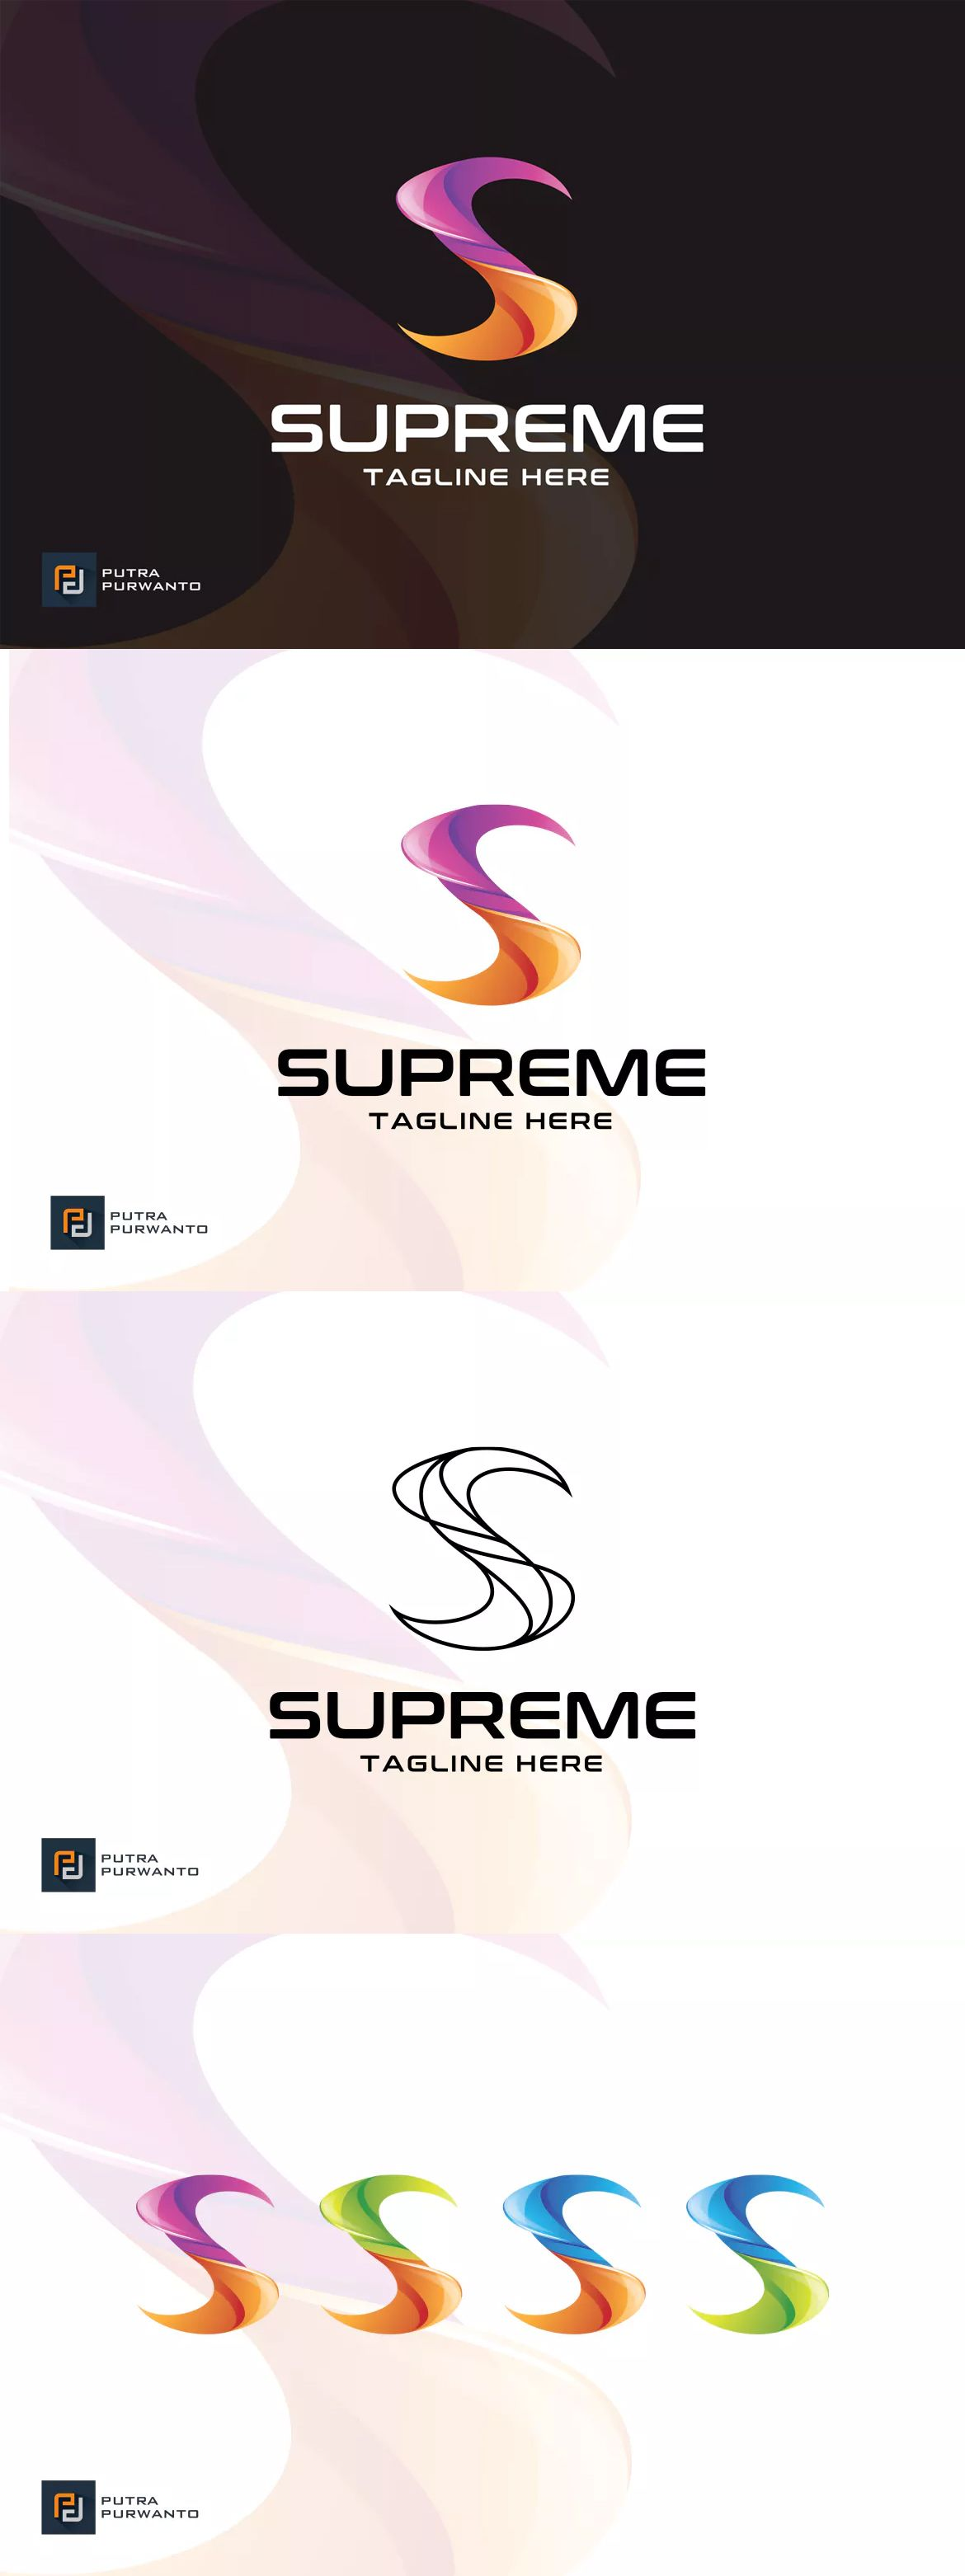 Supreme / Letter S Logo Template by putra_purwanto on